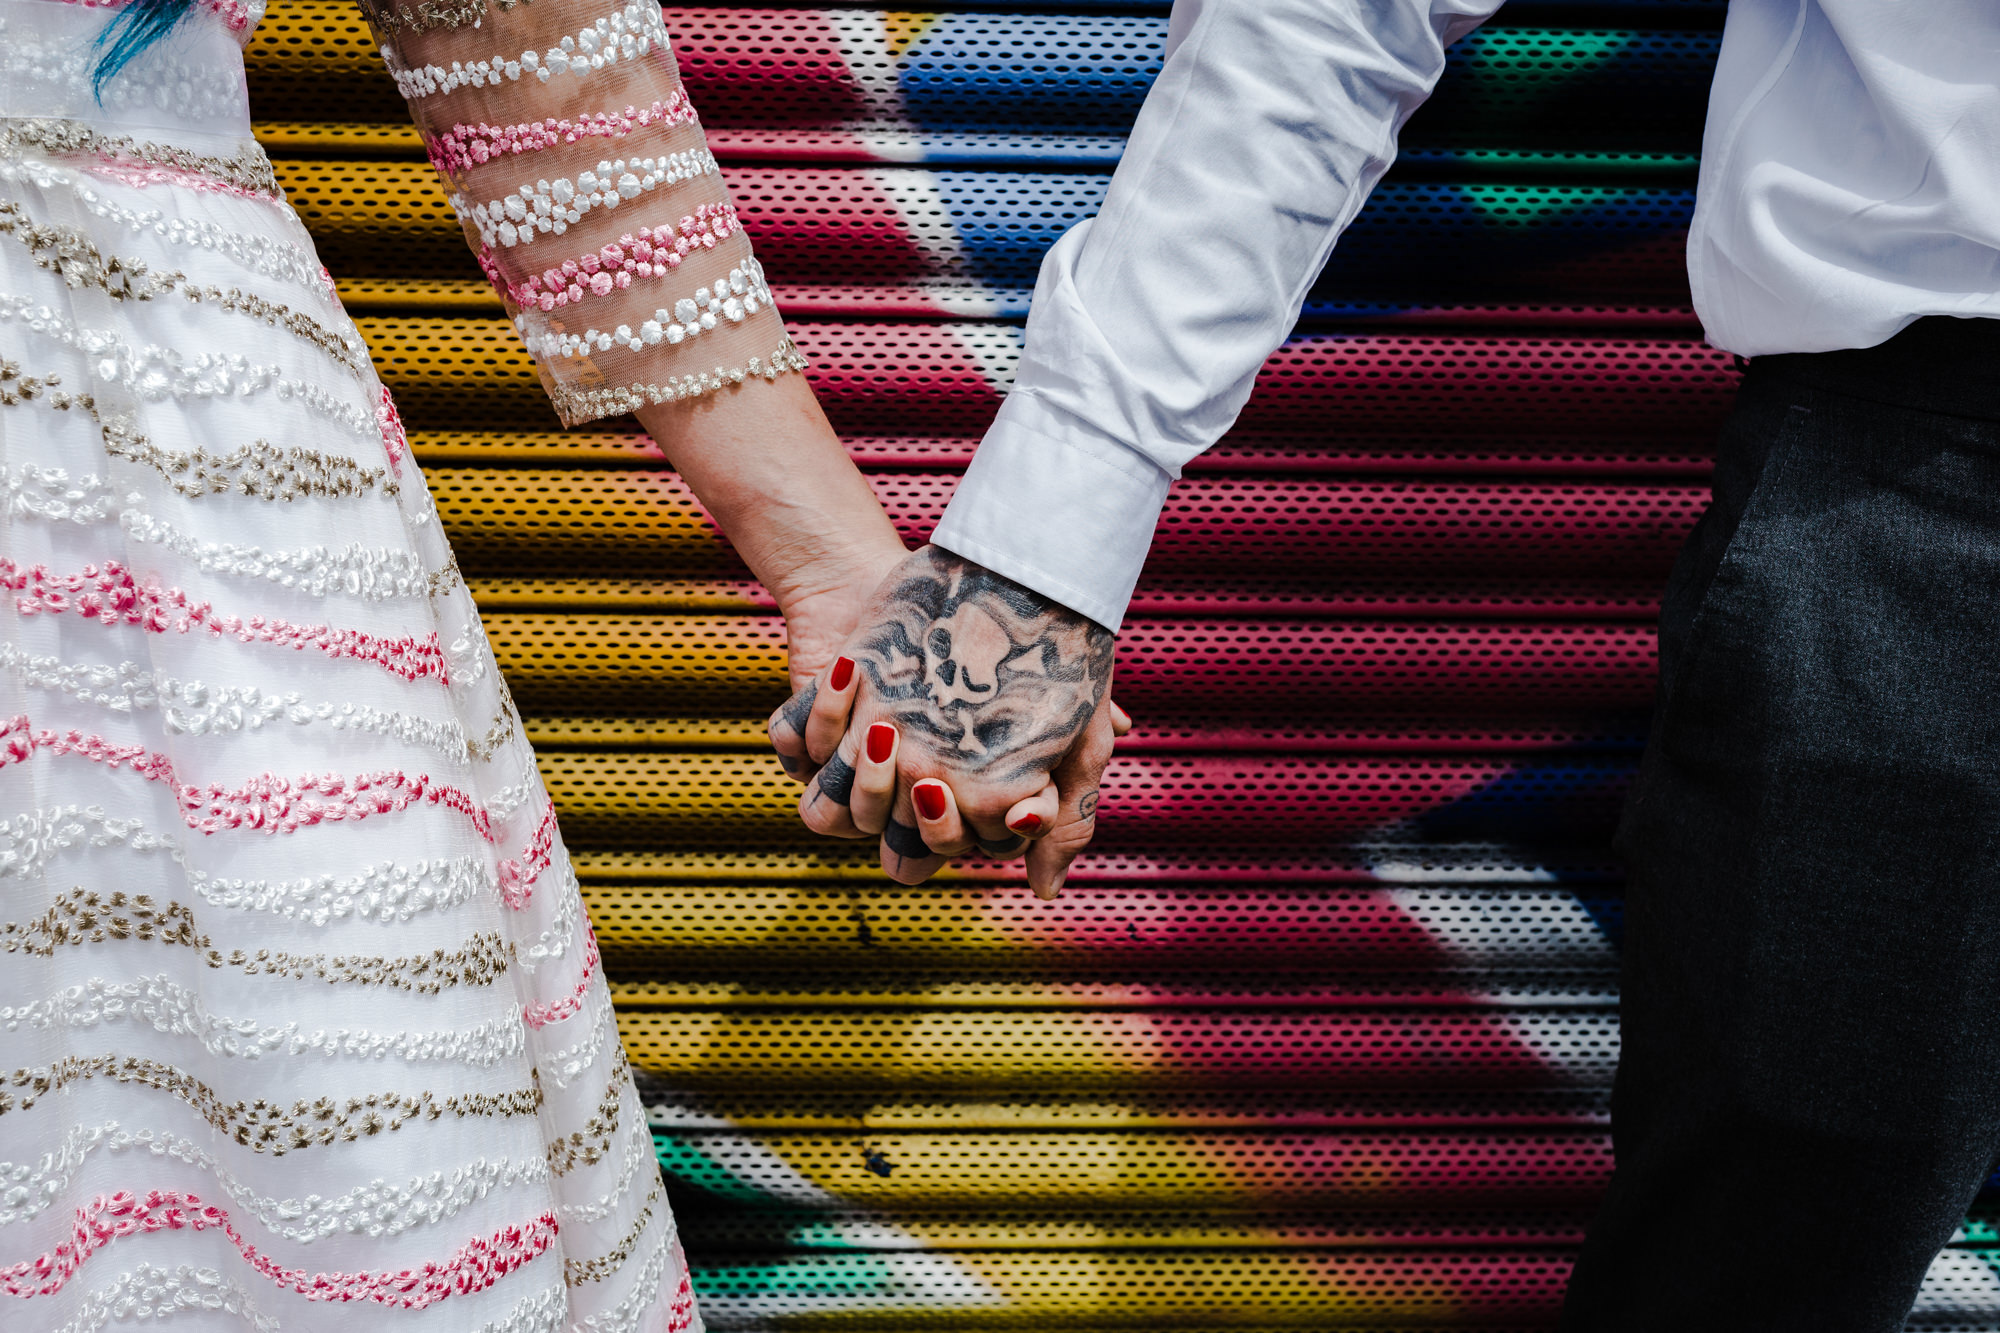 Wedding Planning - Couples hands in front of graffiti wall